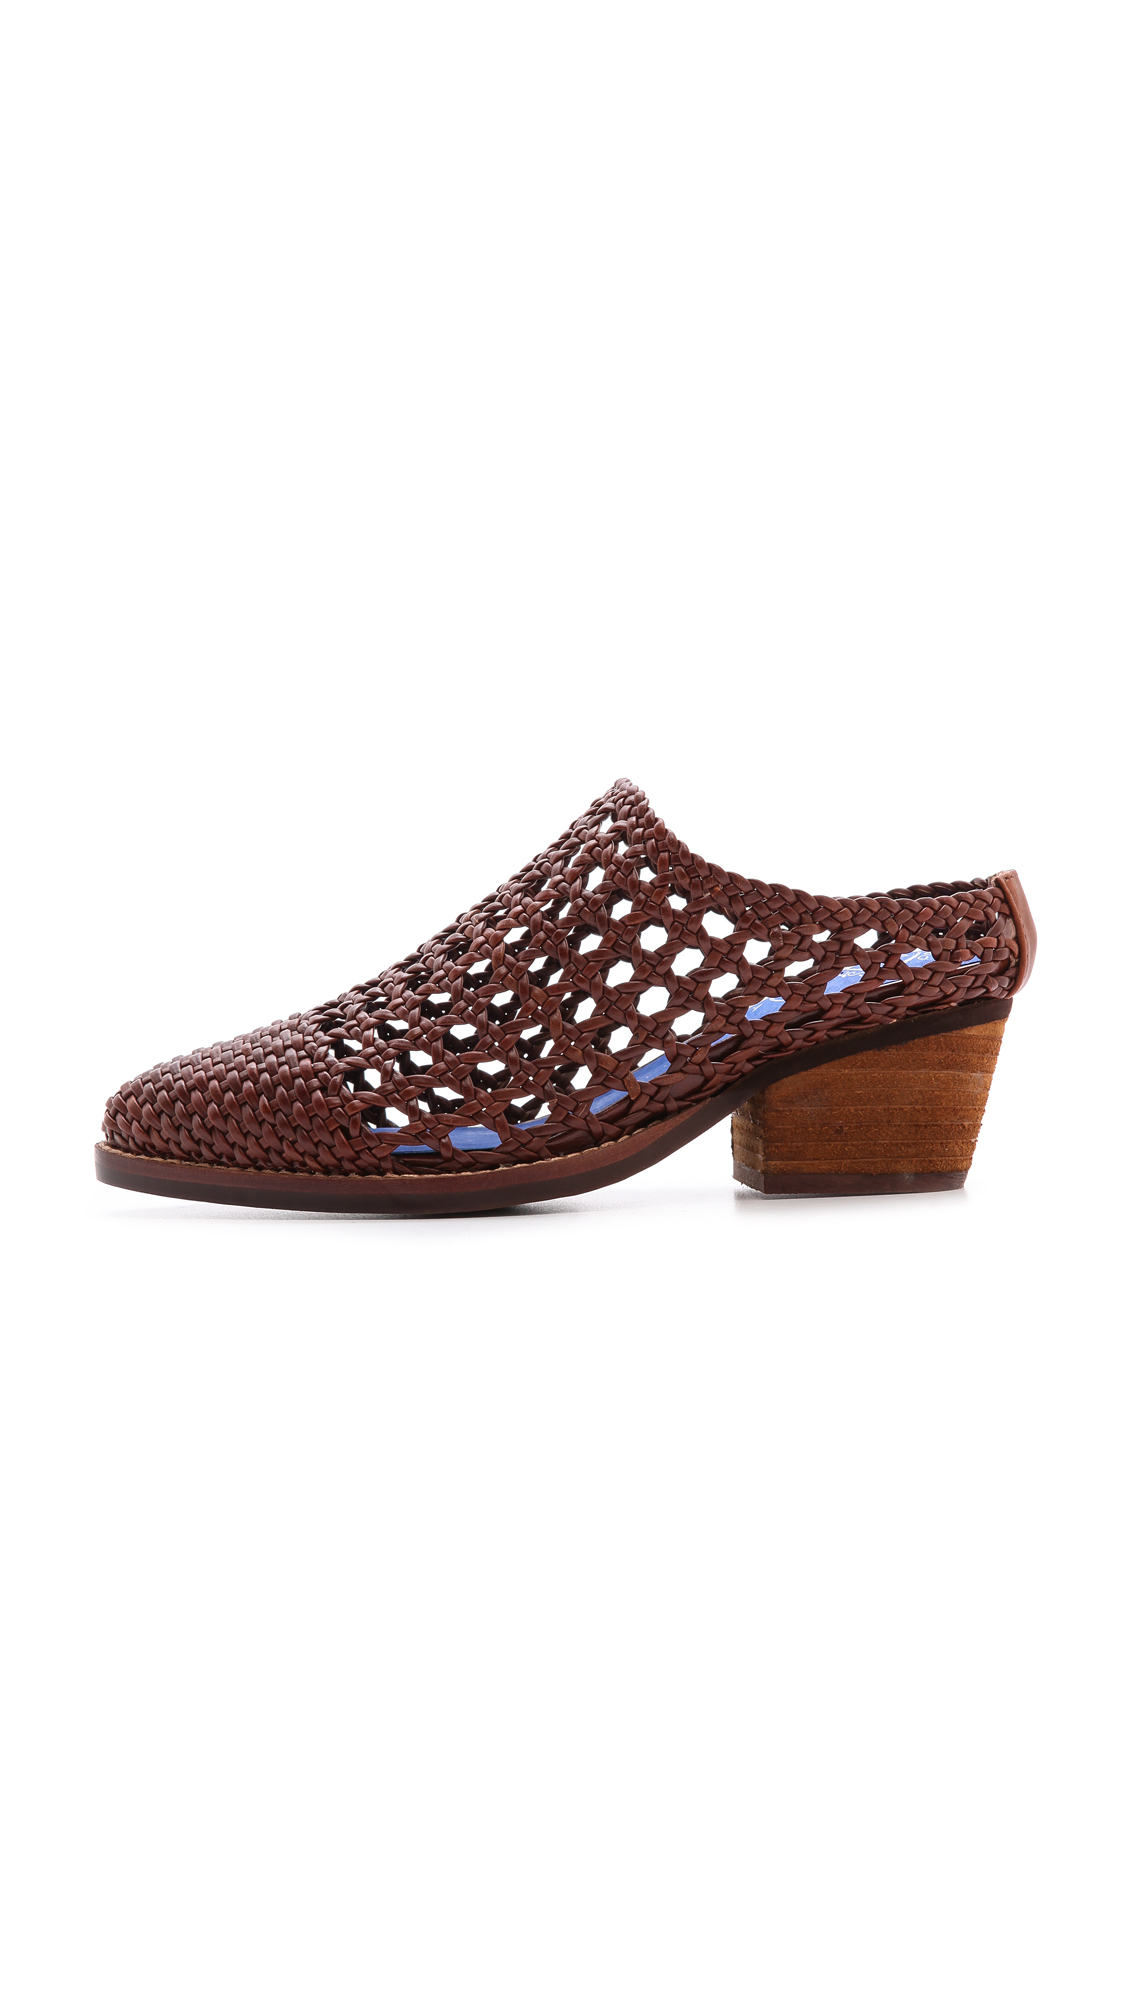 Jeffrey Campbell Armadillo Woven Mules Brown In Brown Lyst